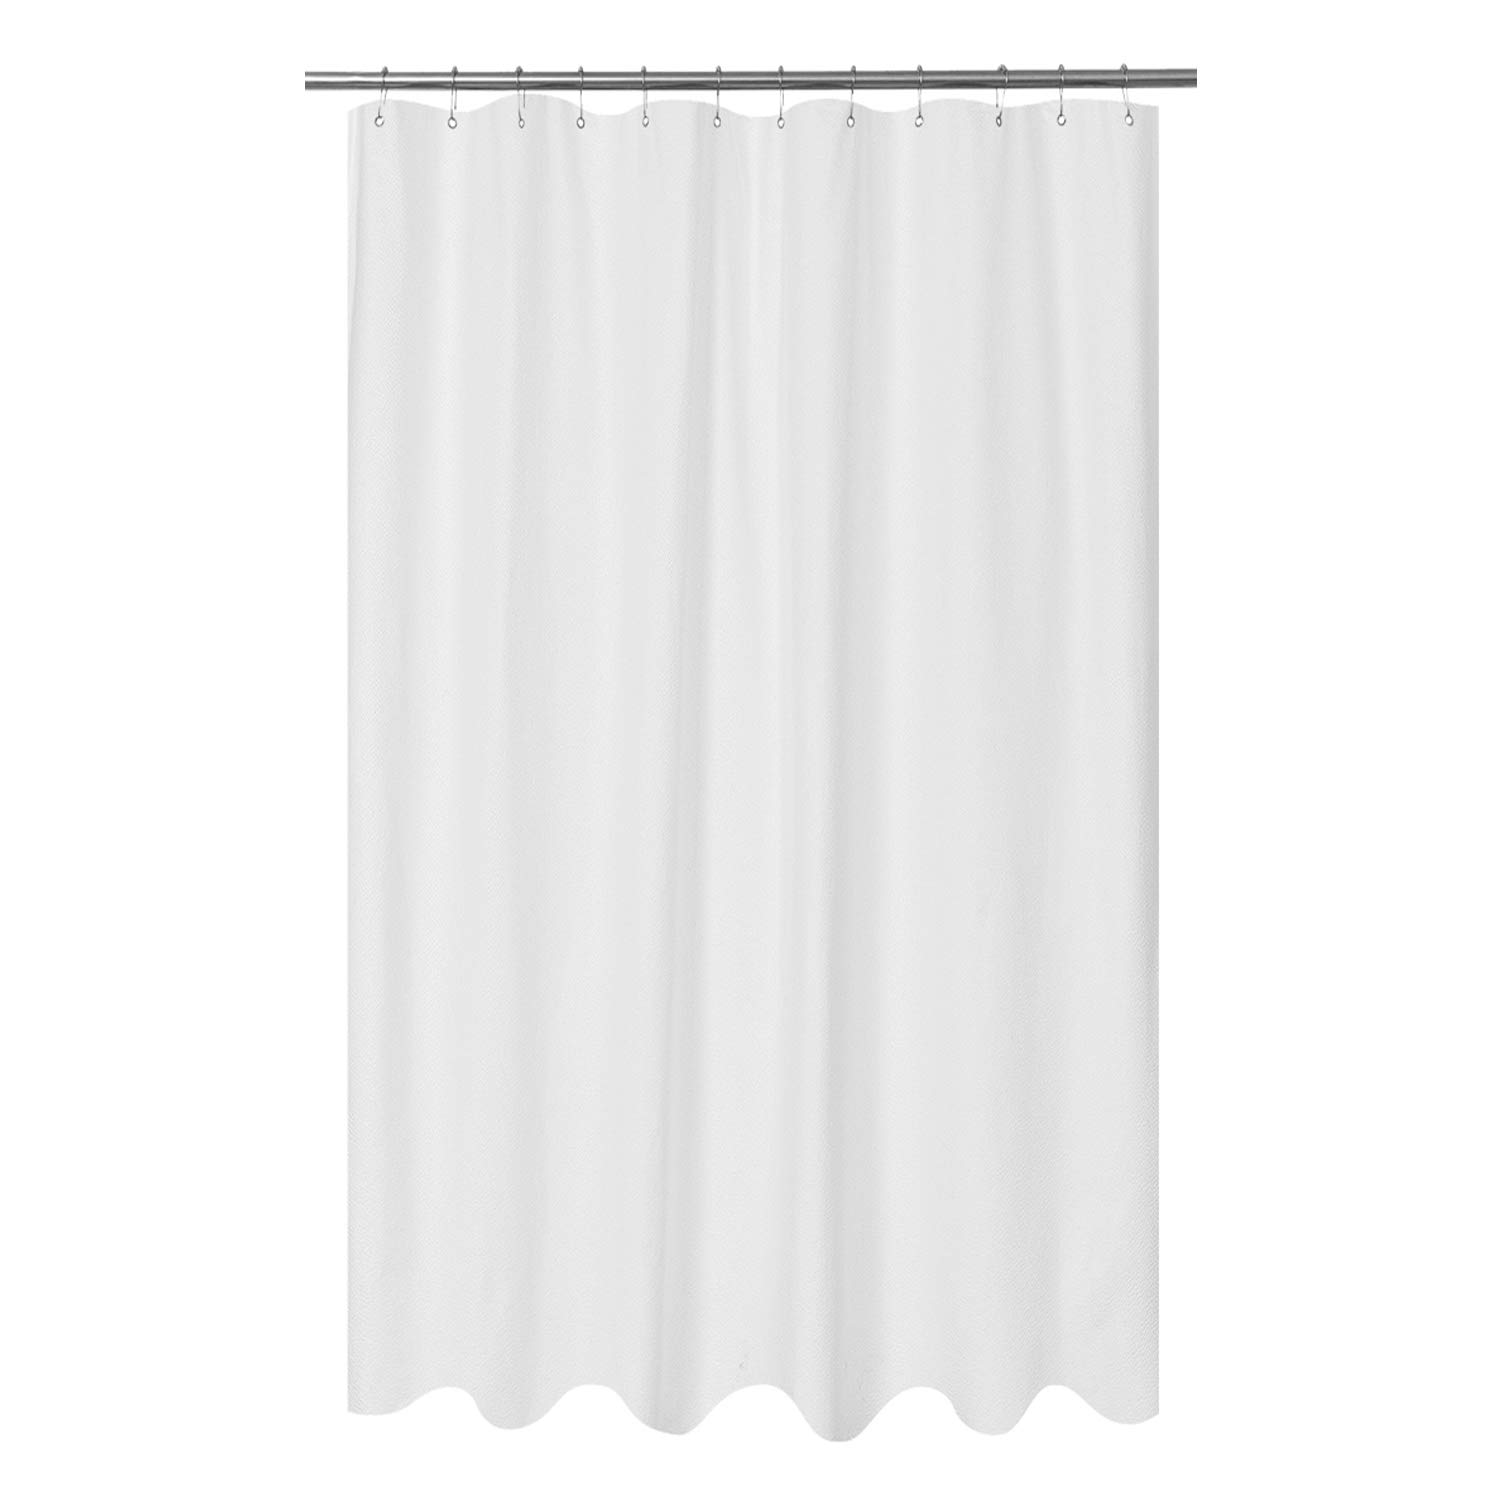 Mrs Awesome Embossed Microfiber Fabric Extra Long Shower Curtain Liner 84 inches Length, Washable and Water Repellent, White